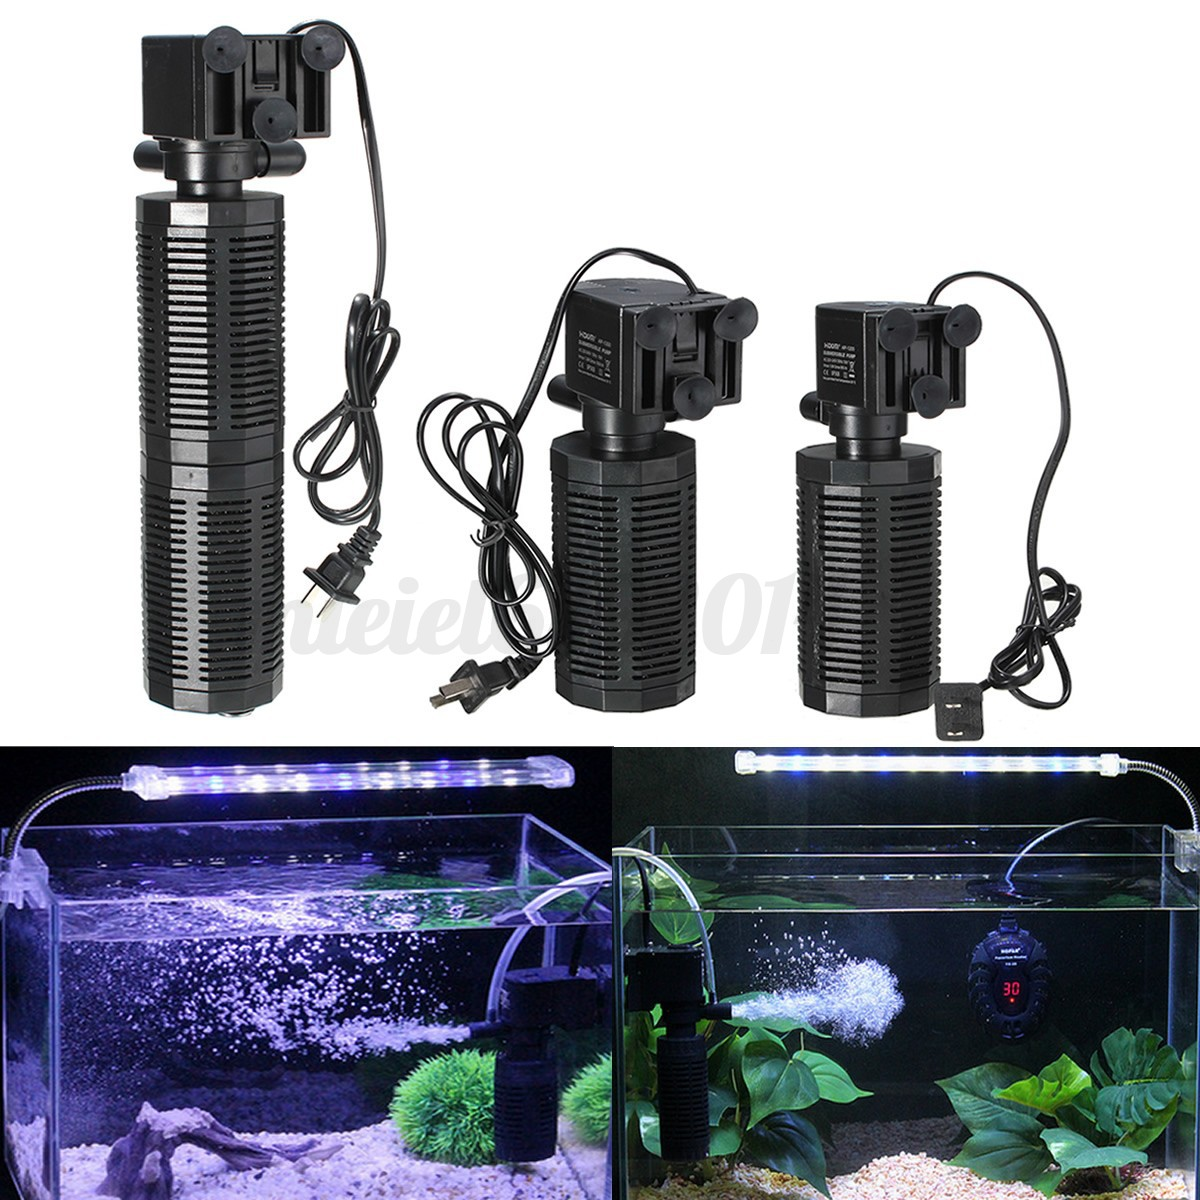 3 model submersible aquarium internal filter water pump f for Pool filter for koi pond